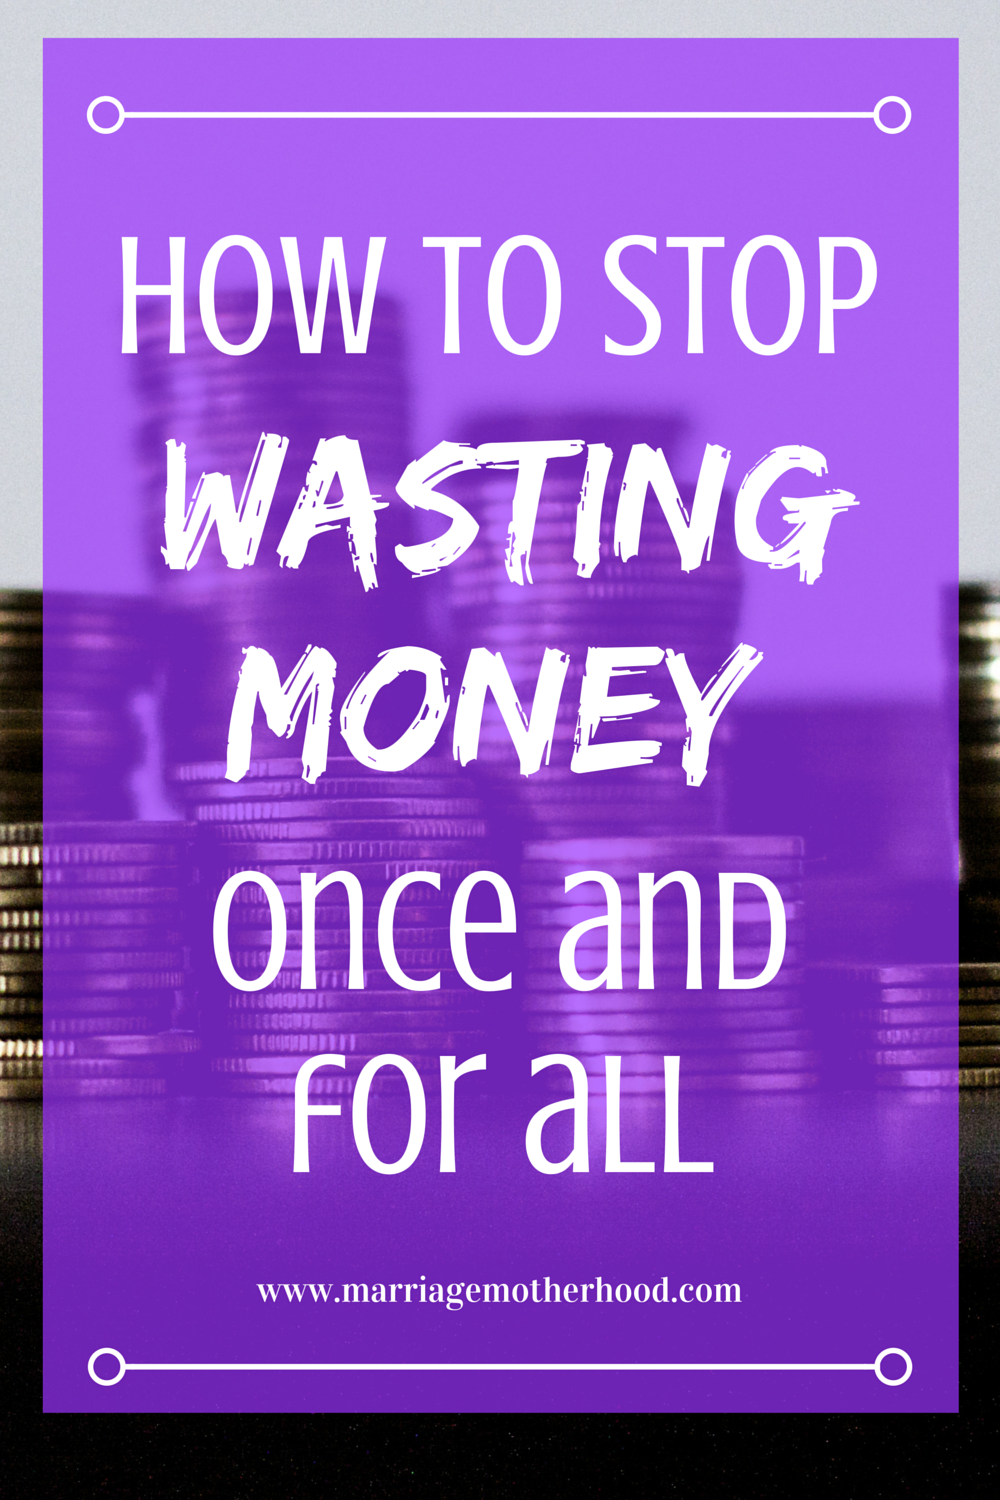 WASTING MONEY